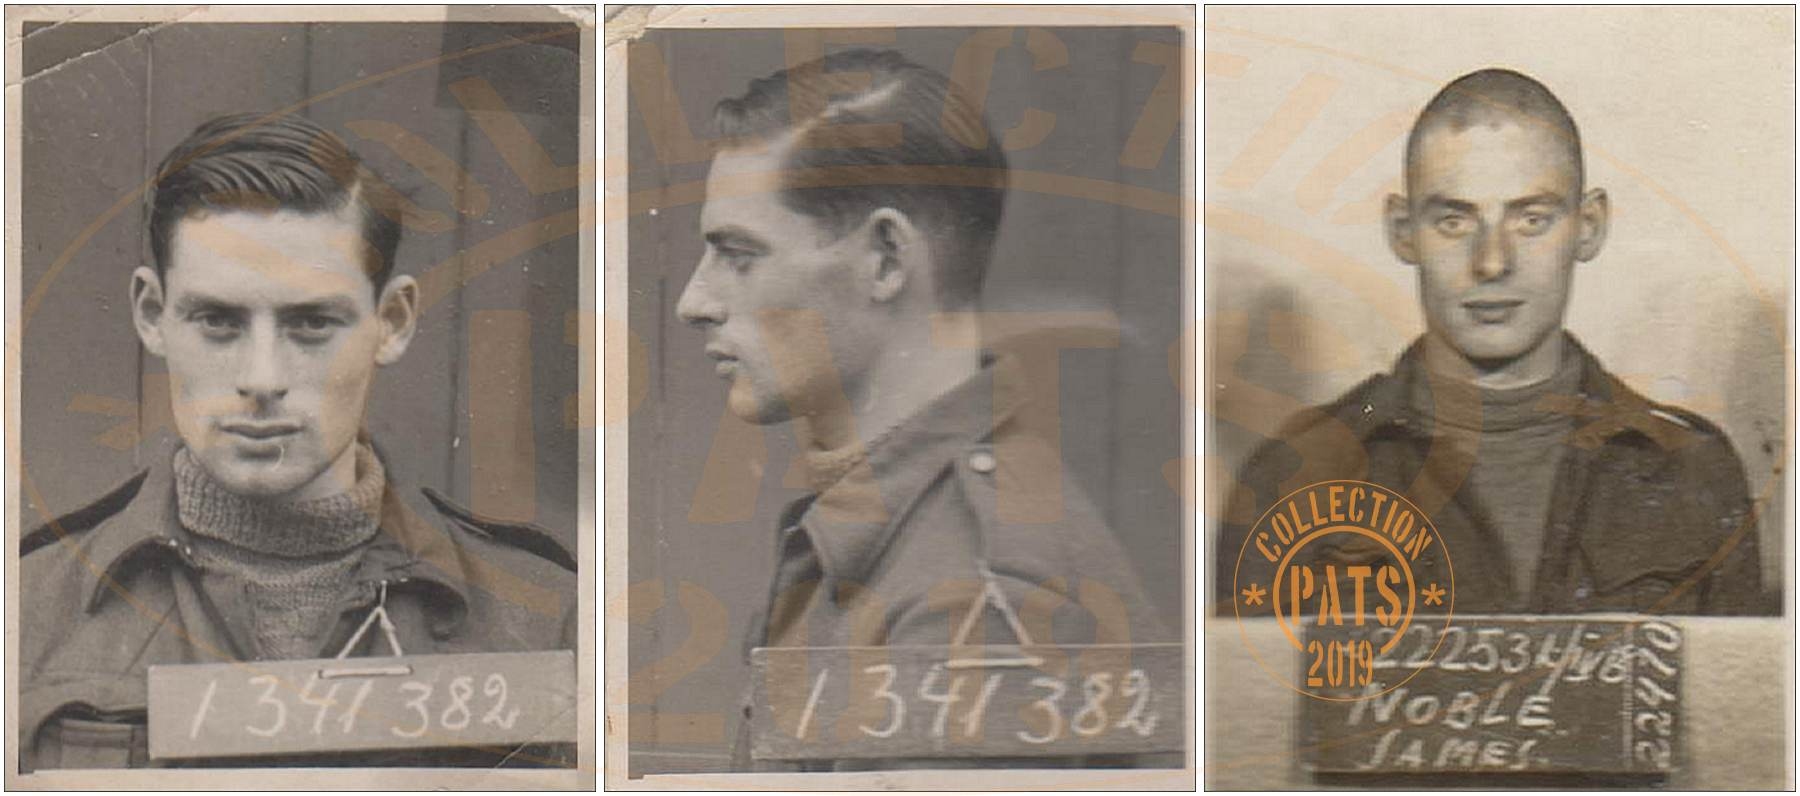 ID's 1341382 - Sgt. James Noble - POW No. 222531 - Stalag IV-B - Mühlberg an der Elbe